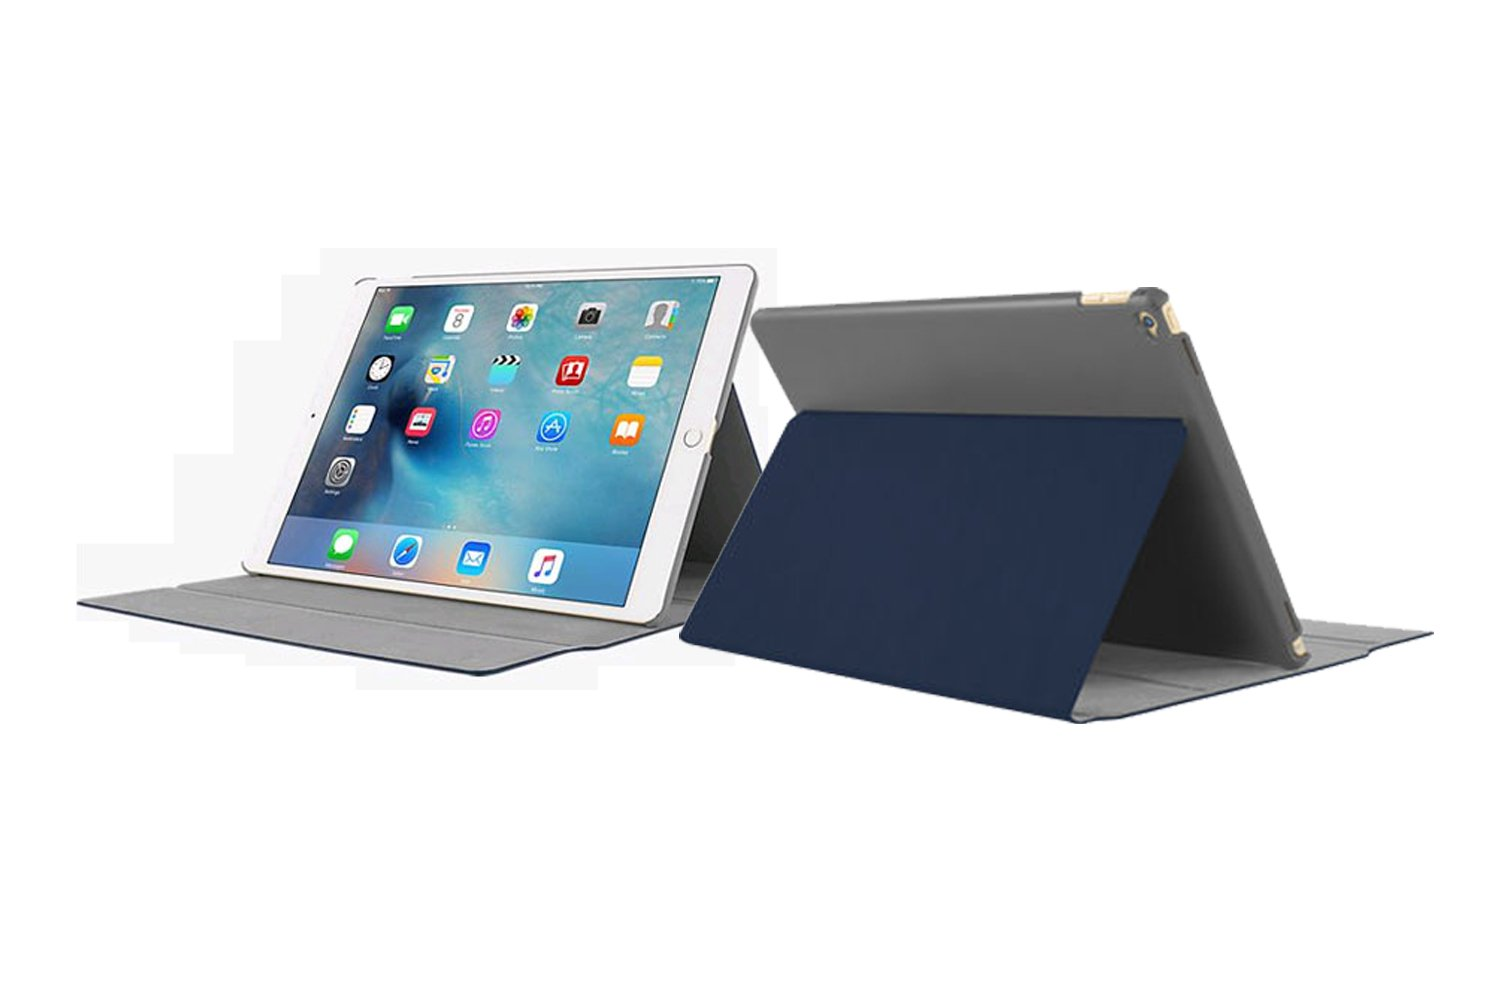 separation shoes ca700 5a080 iPad Pro Case,Incipio [Faraday] iPad Pro Ultra-Thin Slim Fit with Magnetic  Folio Fold Rigid Over Closure Cover Vegan Leather case - Navy